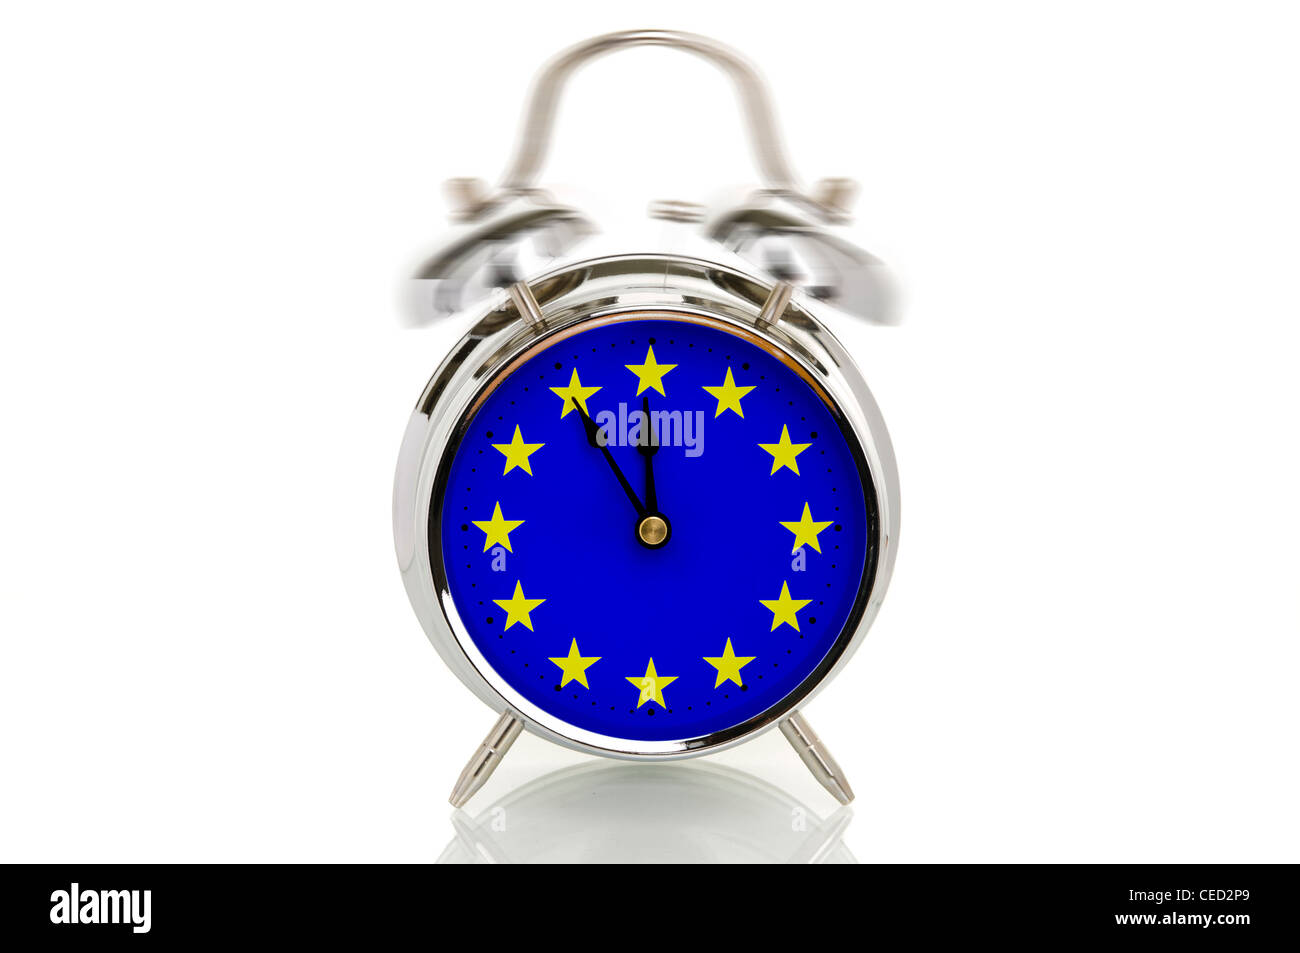 Ringing alarm clock with the European flag, time set to five minutes to twelve, symbolic image for the crisis in - Stock Image